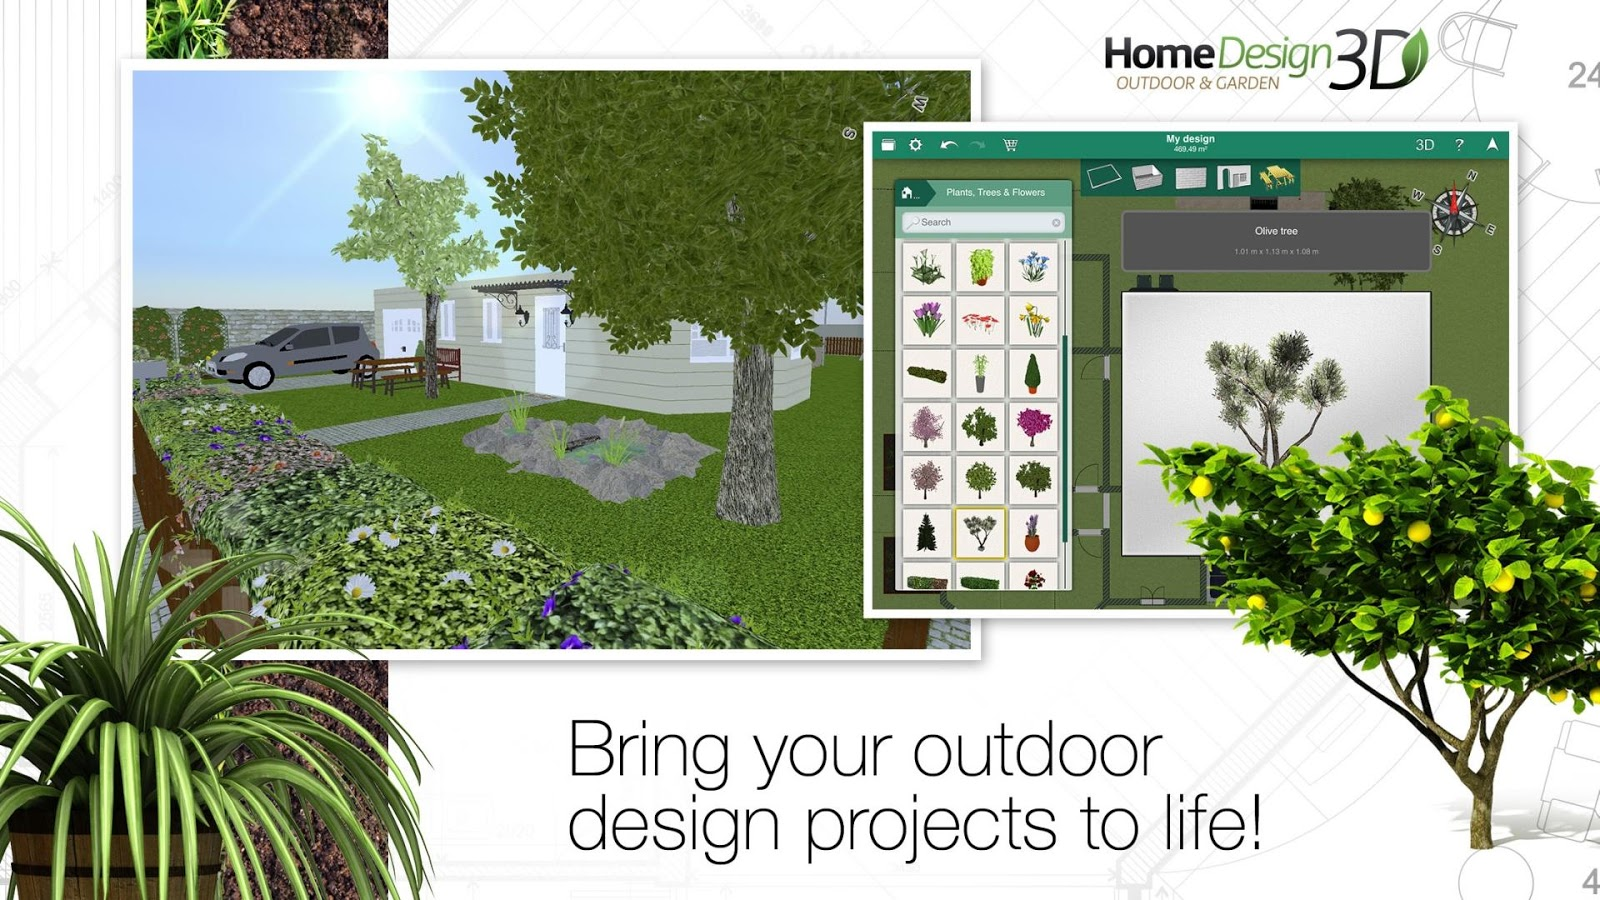 Home Design 3d Outdoor Garden Slides Into The Play Store For All Your Deck Pool And Open Air